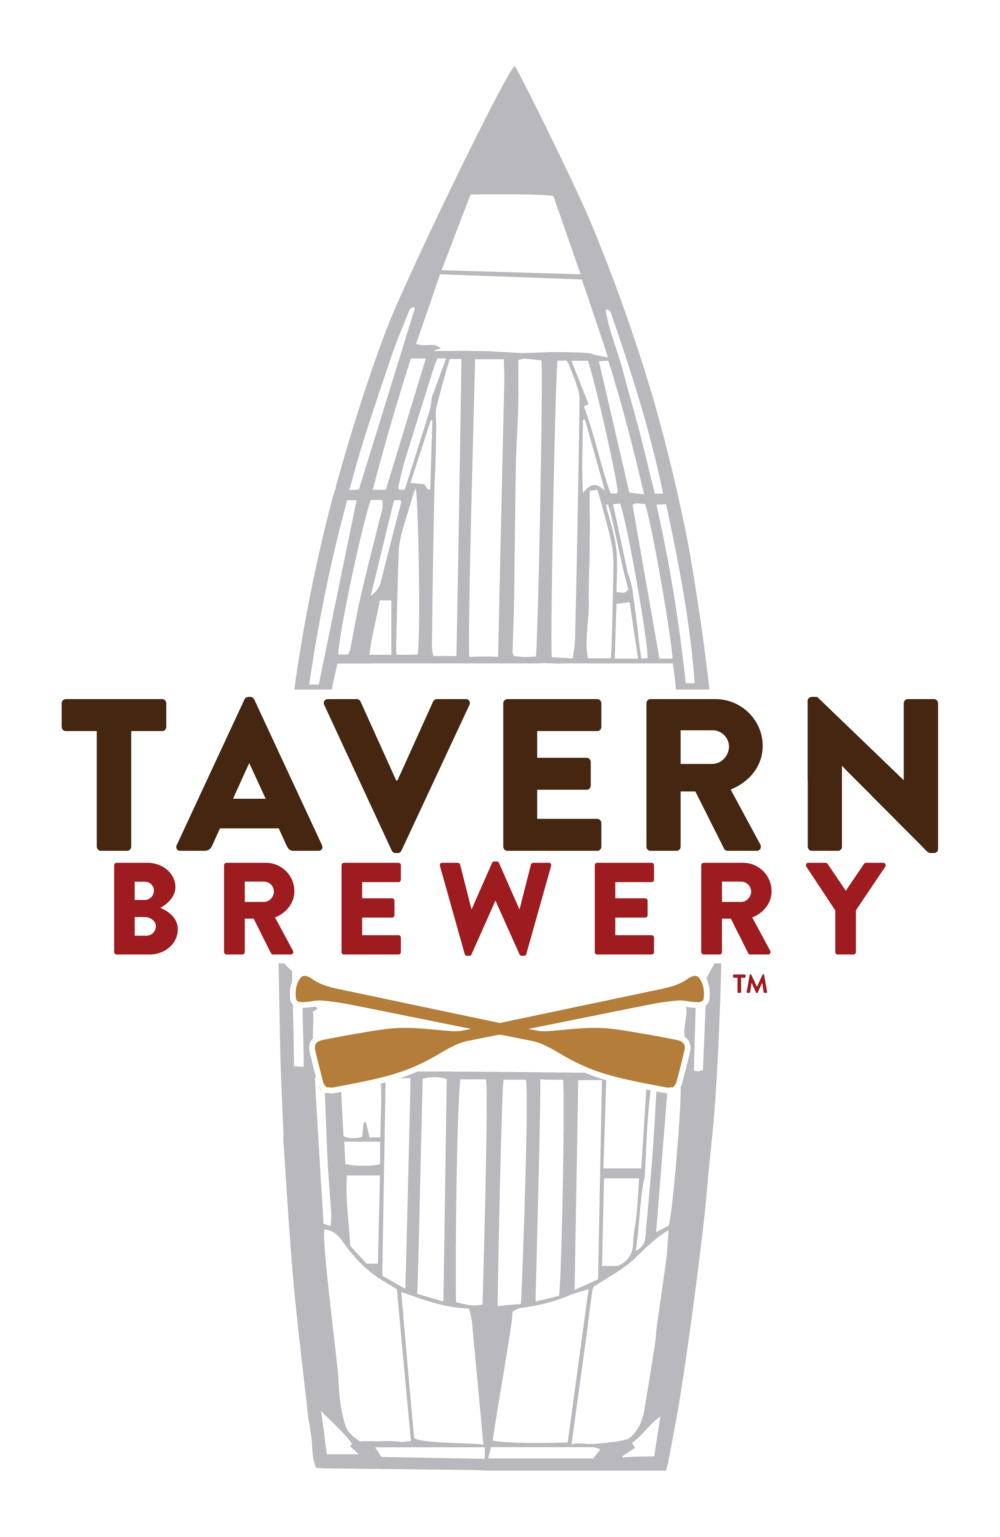 TavernBrewery_Clean-01.png